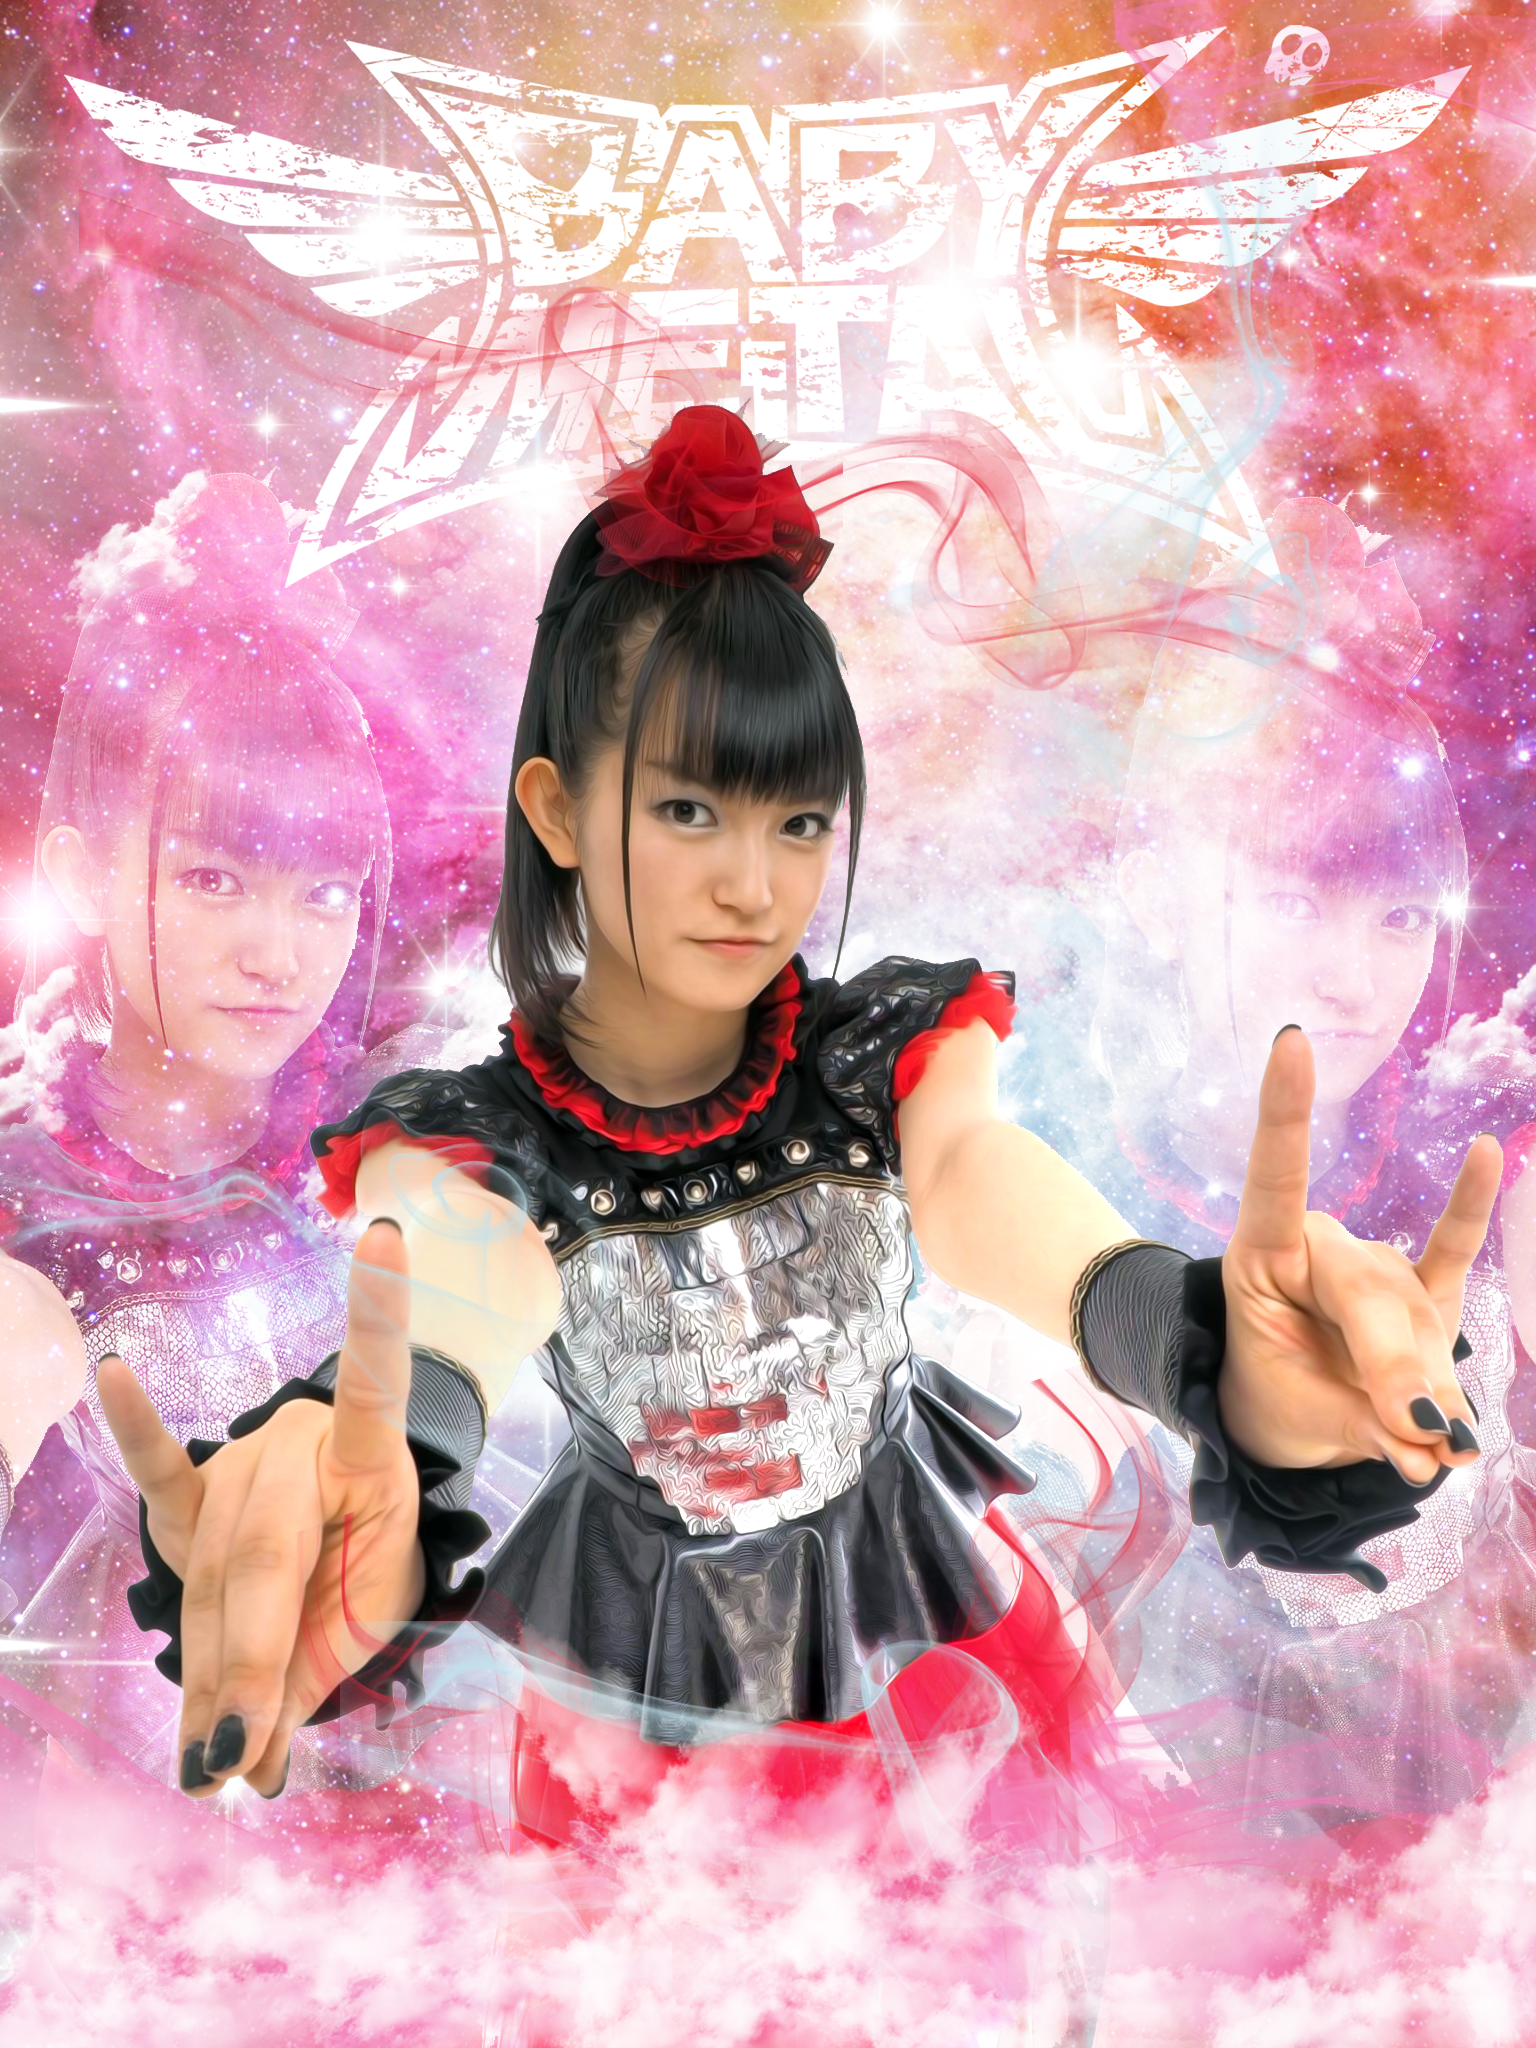 sumetal wallpaper / babymetal Metallic wallpaper, Metal